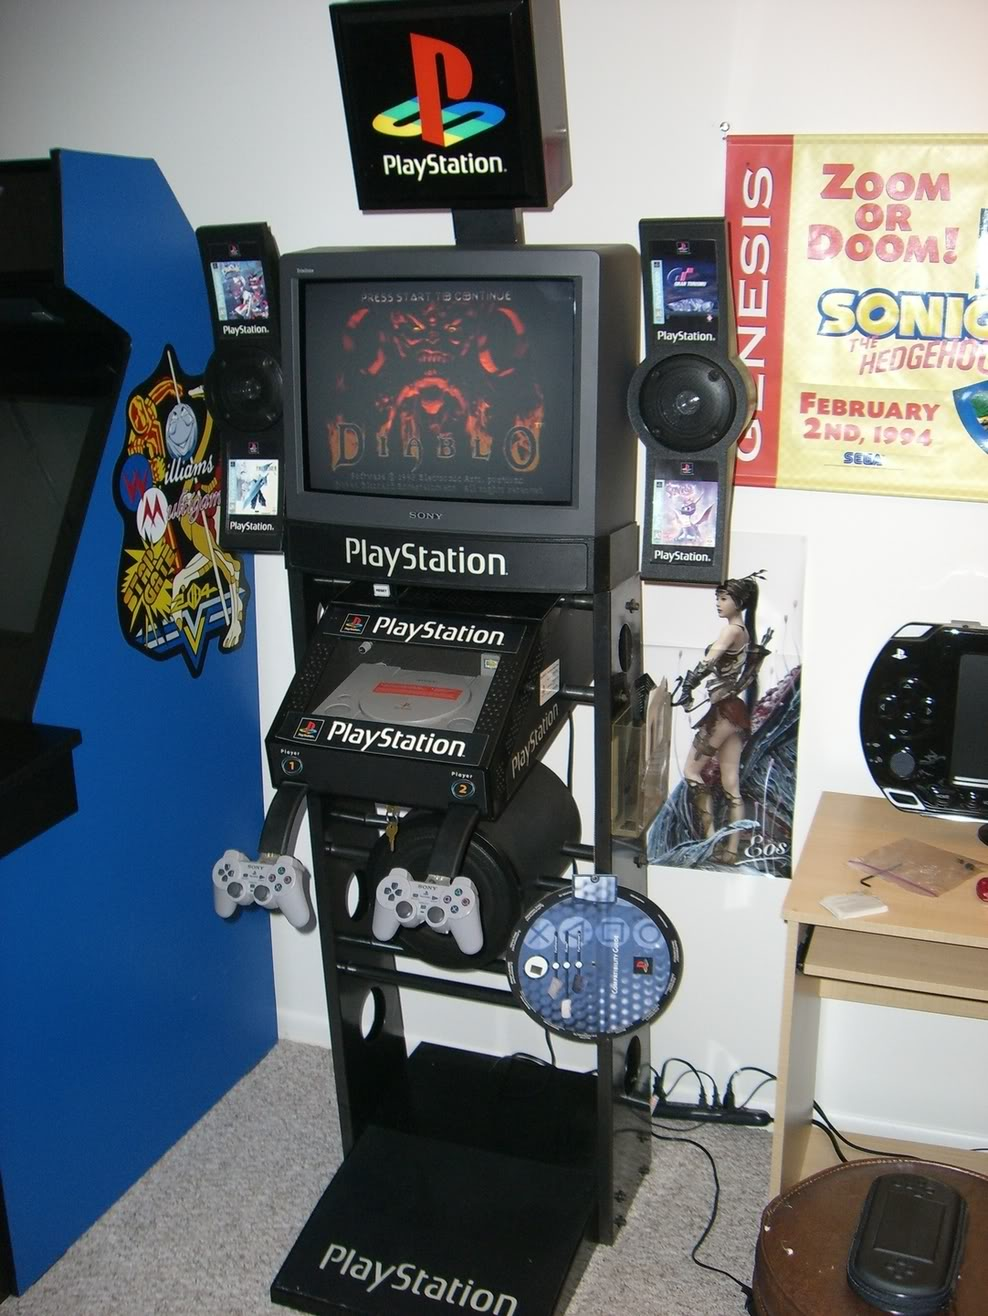 playstation 1 kiosk, ps1 kiosk, playstation kiosk